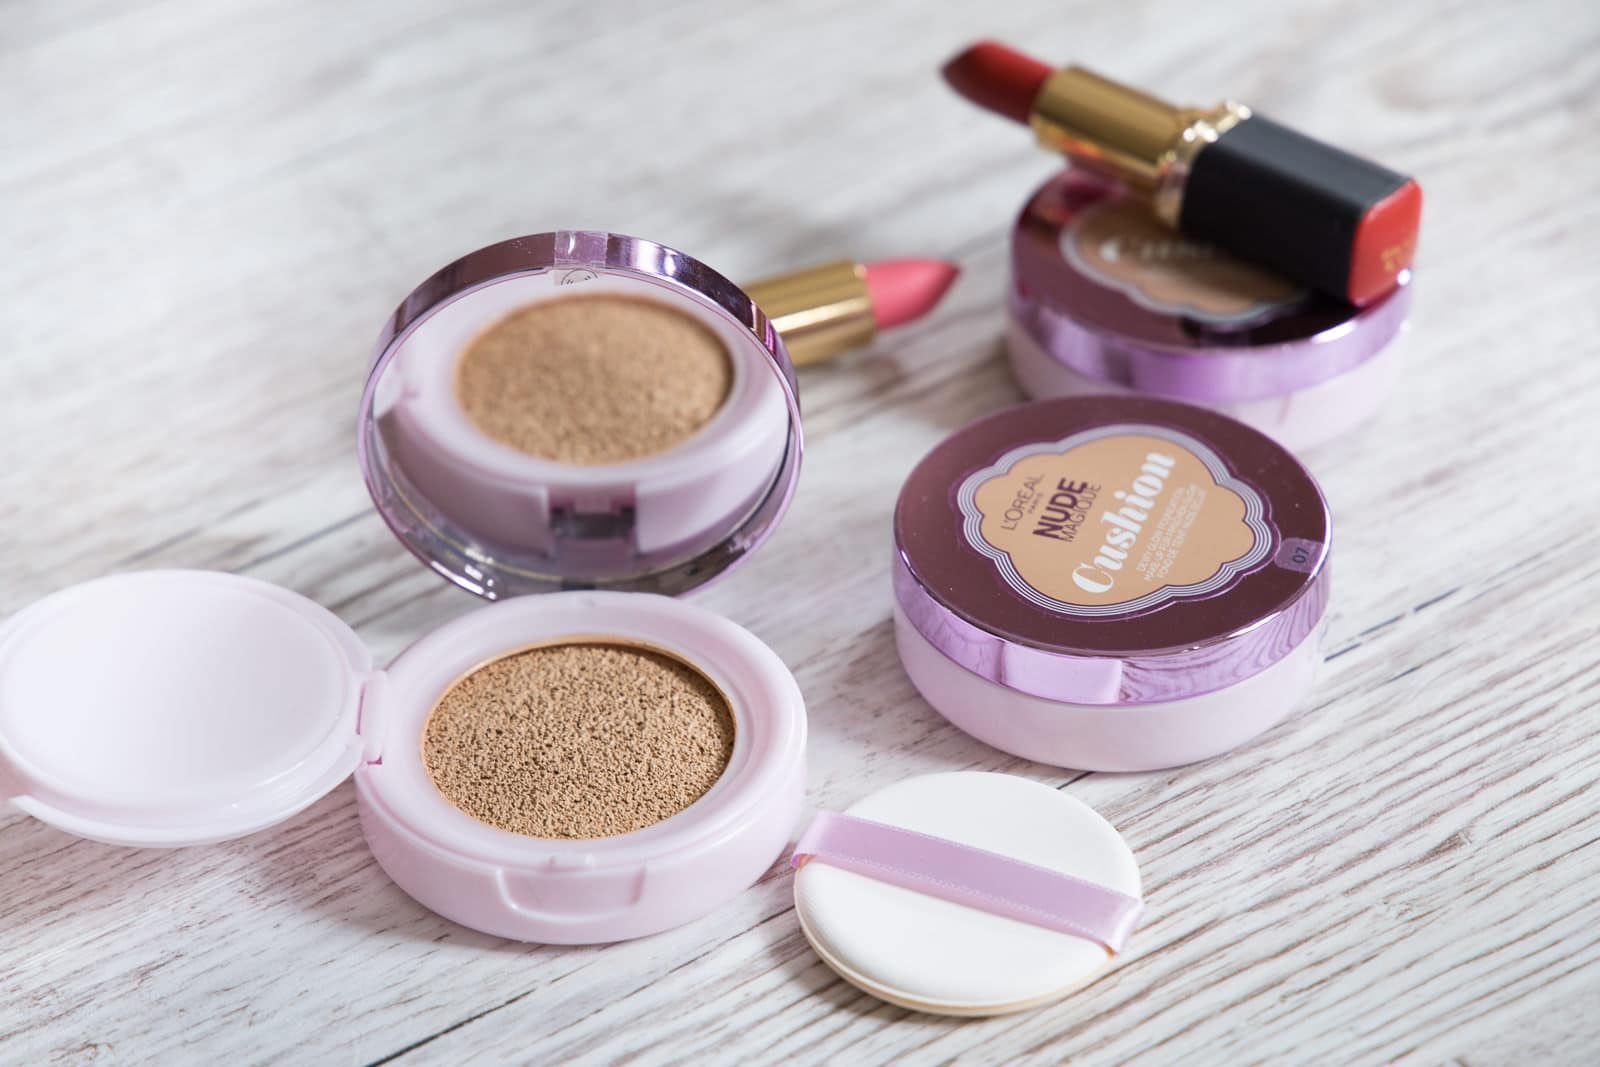 L'Oréal Nude Magique Cushion Foundation: Die 3 Nuancen im Test